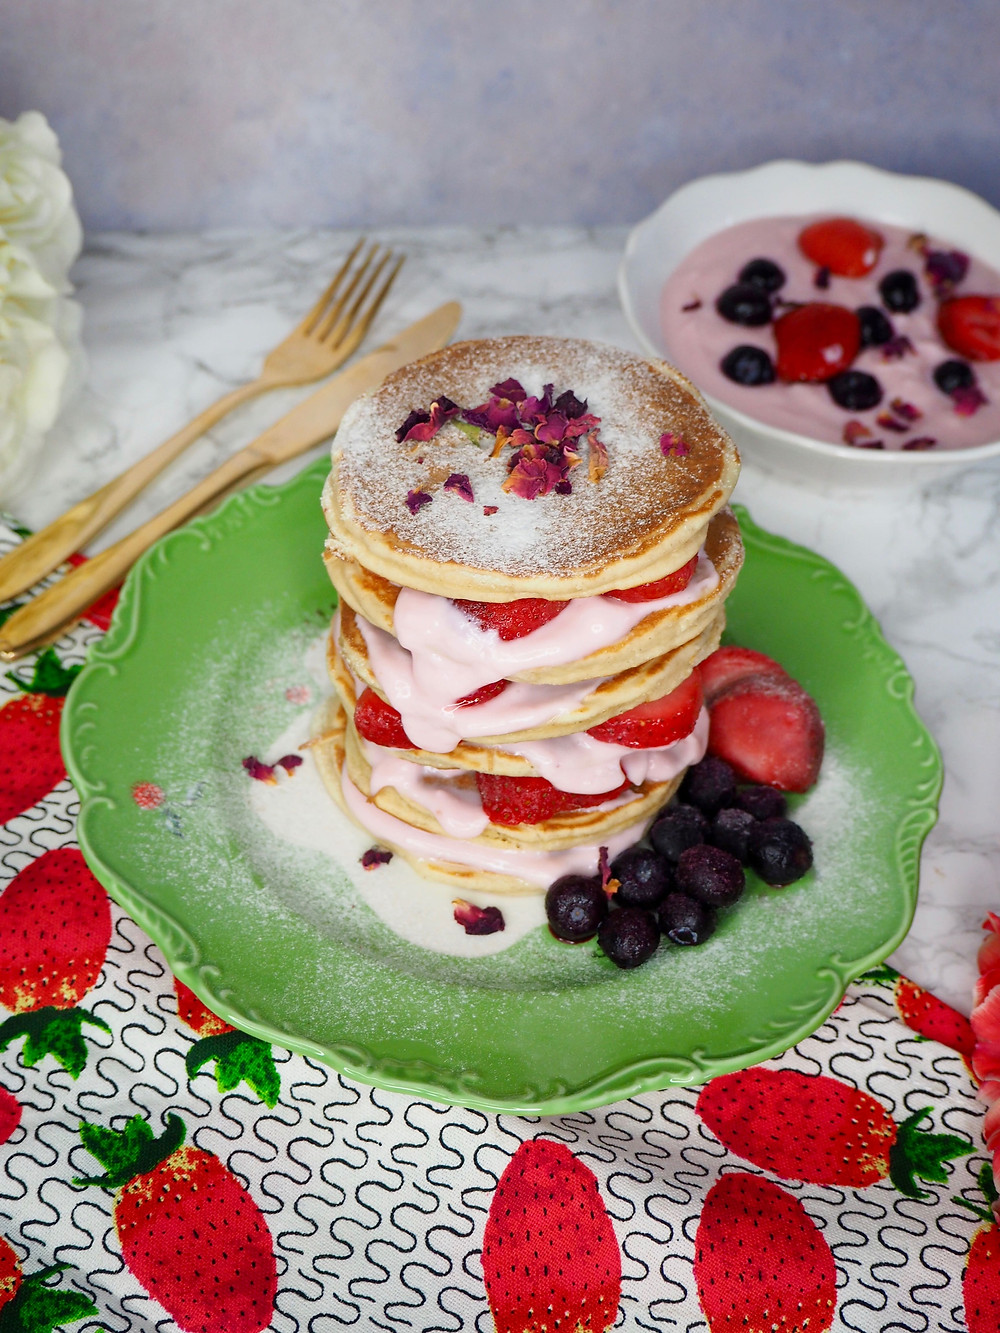 Buttermilk pancakes on a green Anthopologie plate, servied with pink strawberry yogurt and real strawberries and blueberries dusted with sugar